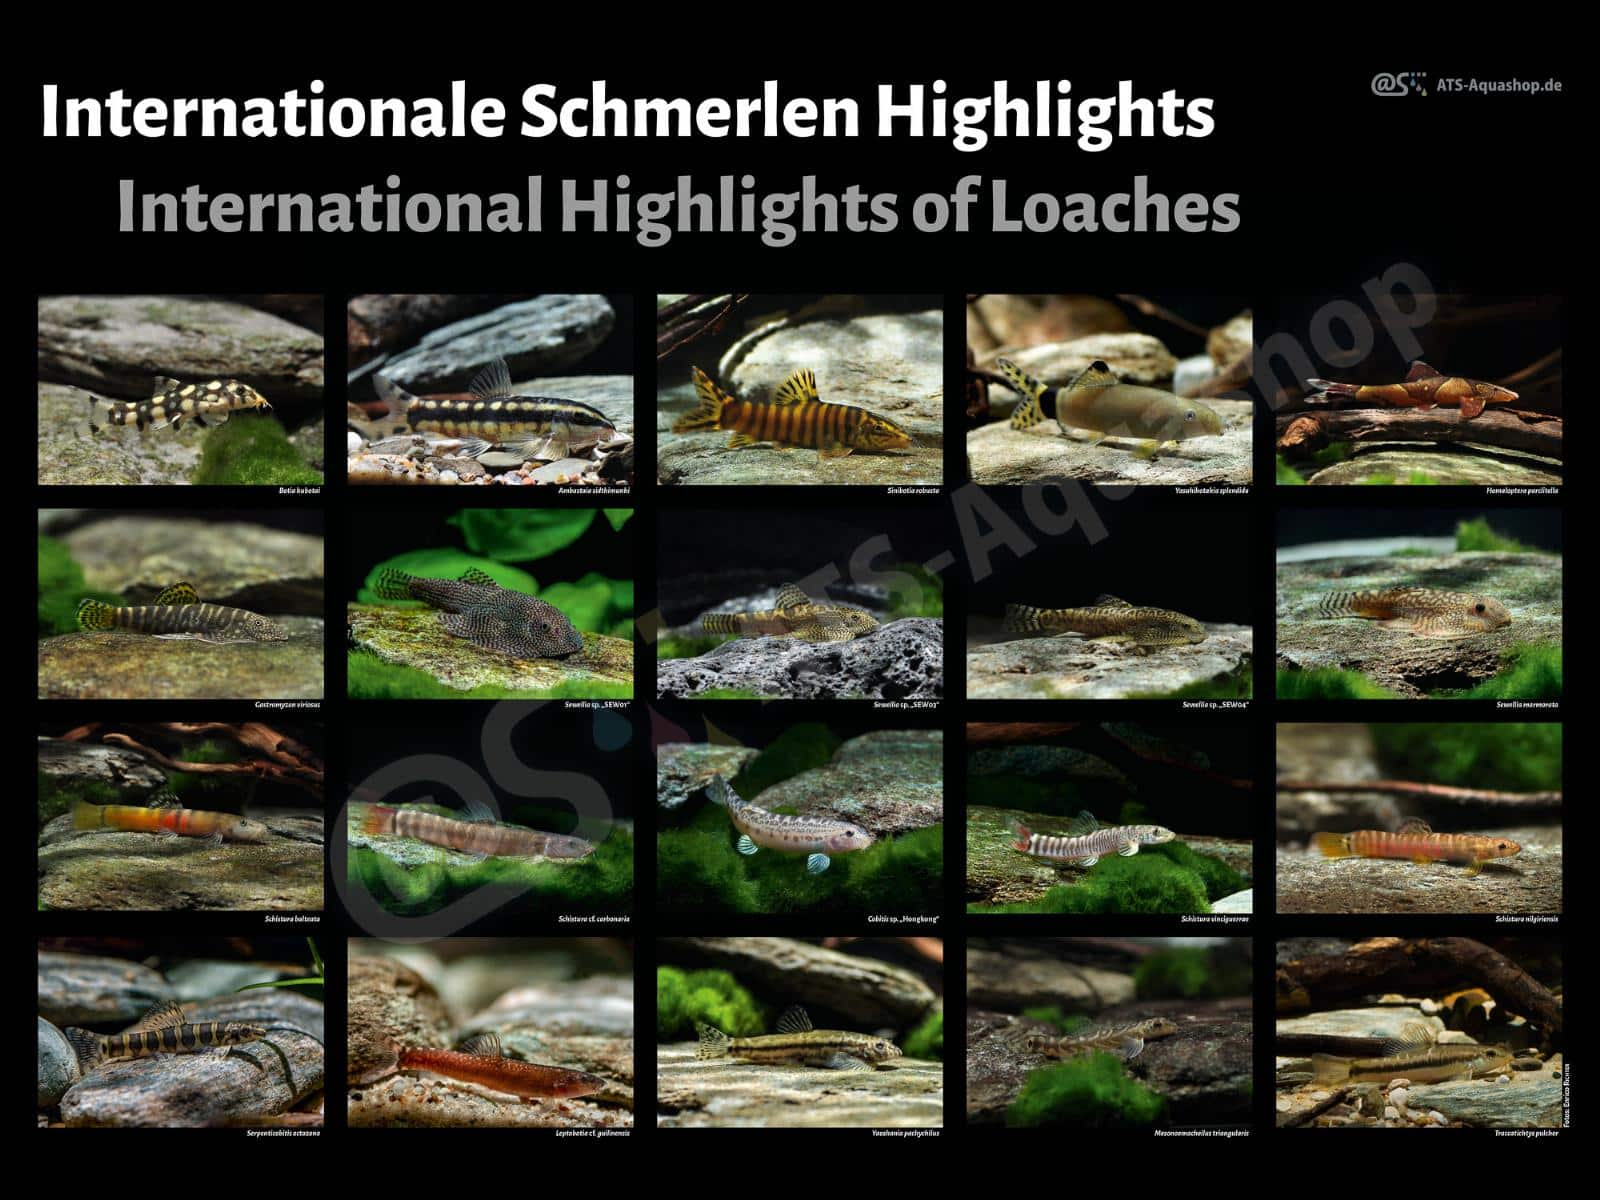 Posters: Internationale Highlights of Loaches (Enrico Richter)